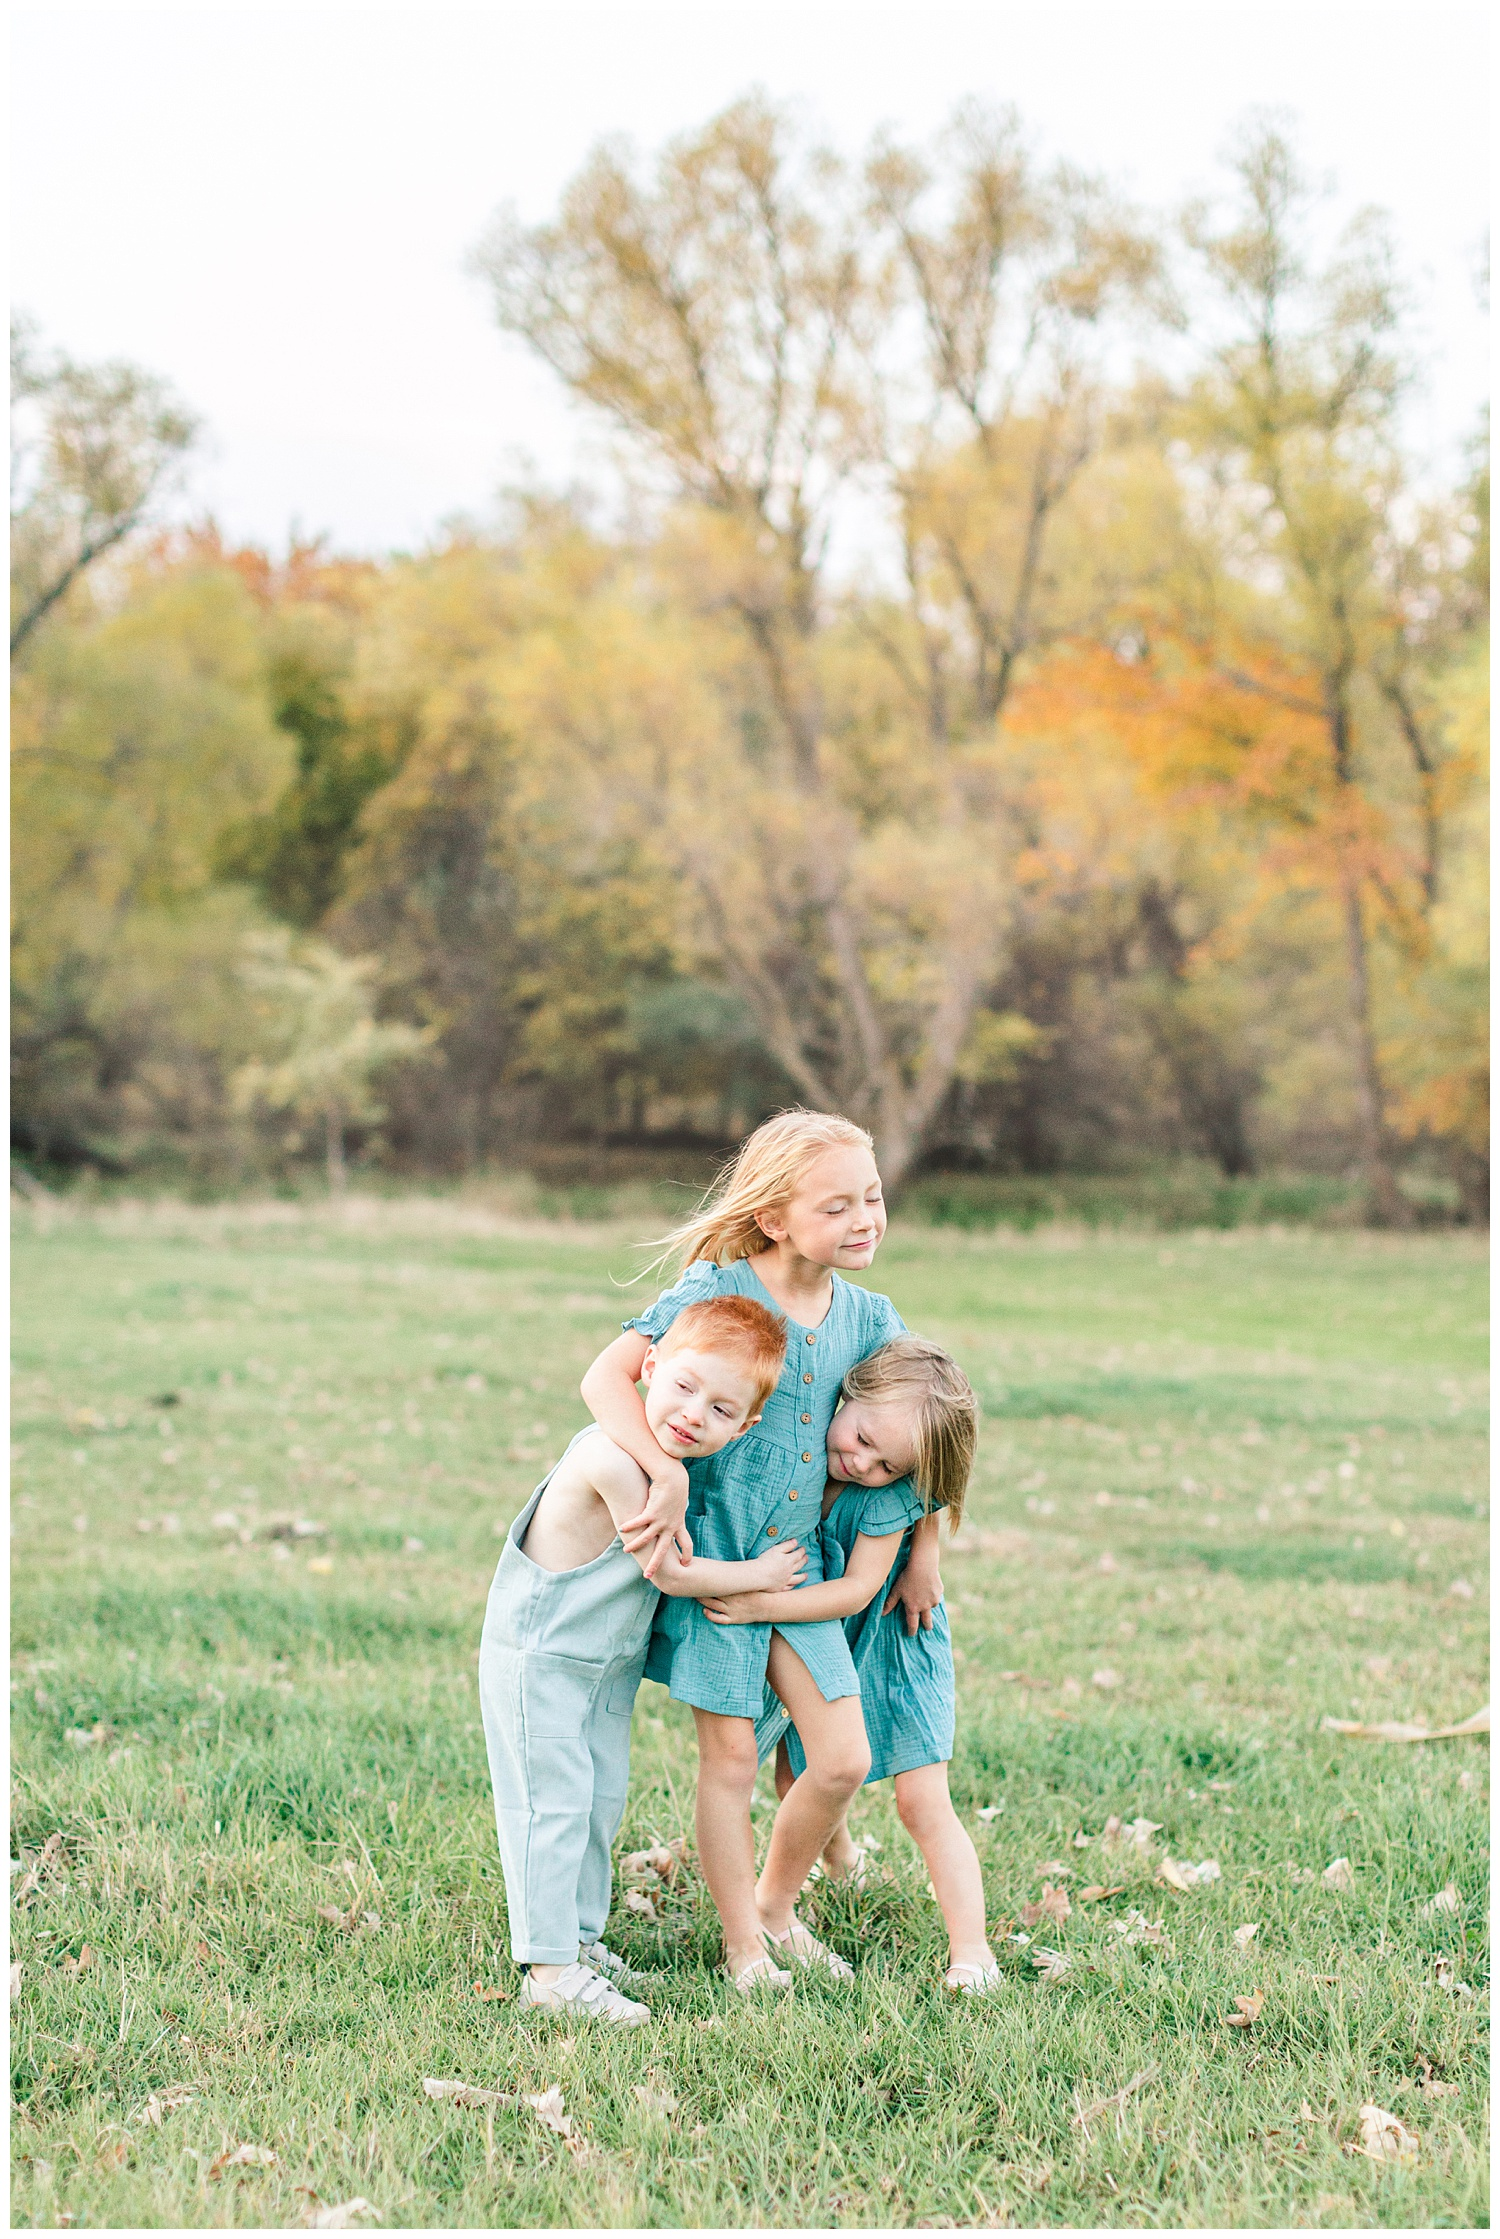 Three children dressed in vintage teal embrace each other in a grassy field looking onward   CB Studio